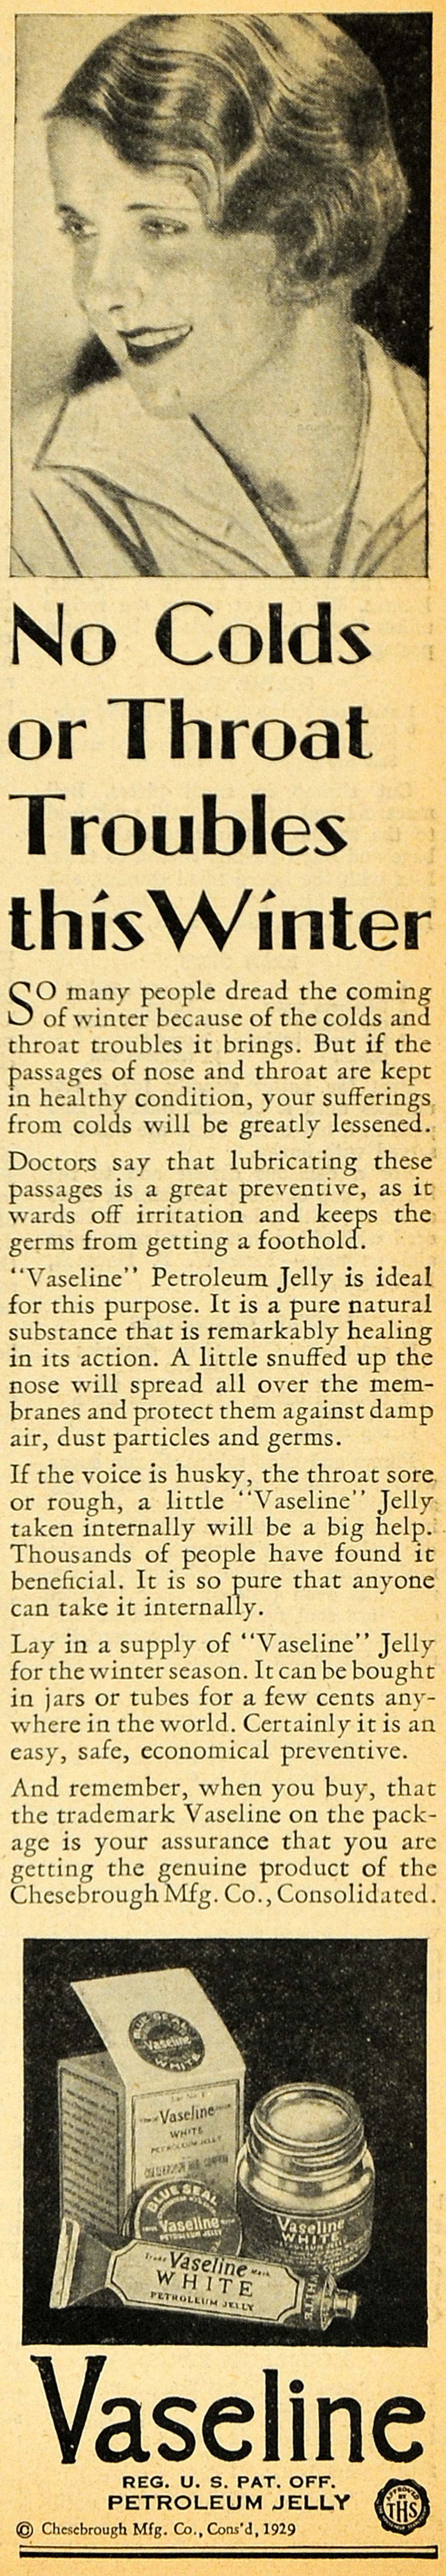 1929 Ad Vaseline Petroleum Jelly Cold Throat Sickness - ORIGINAL HOH1